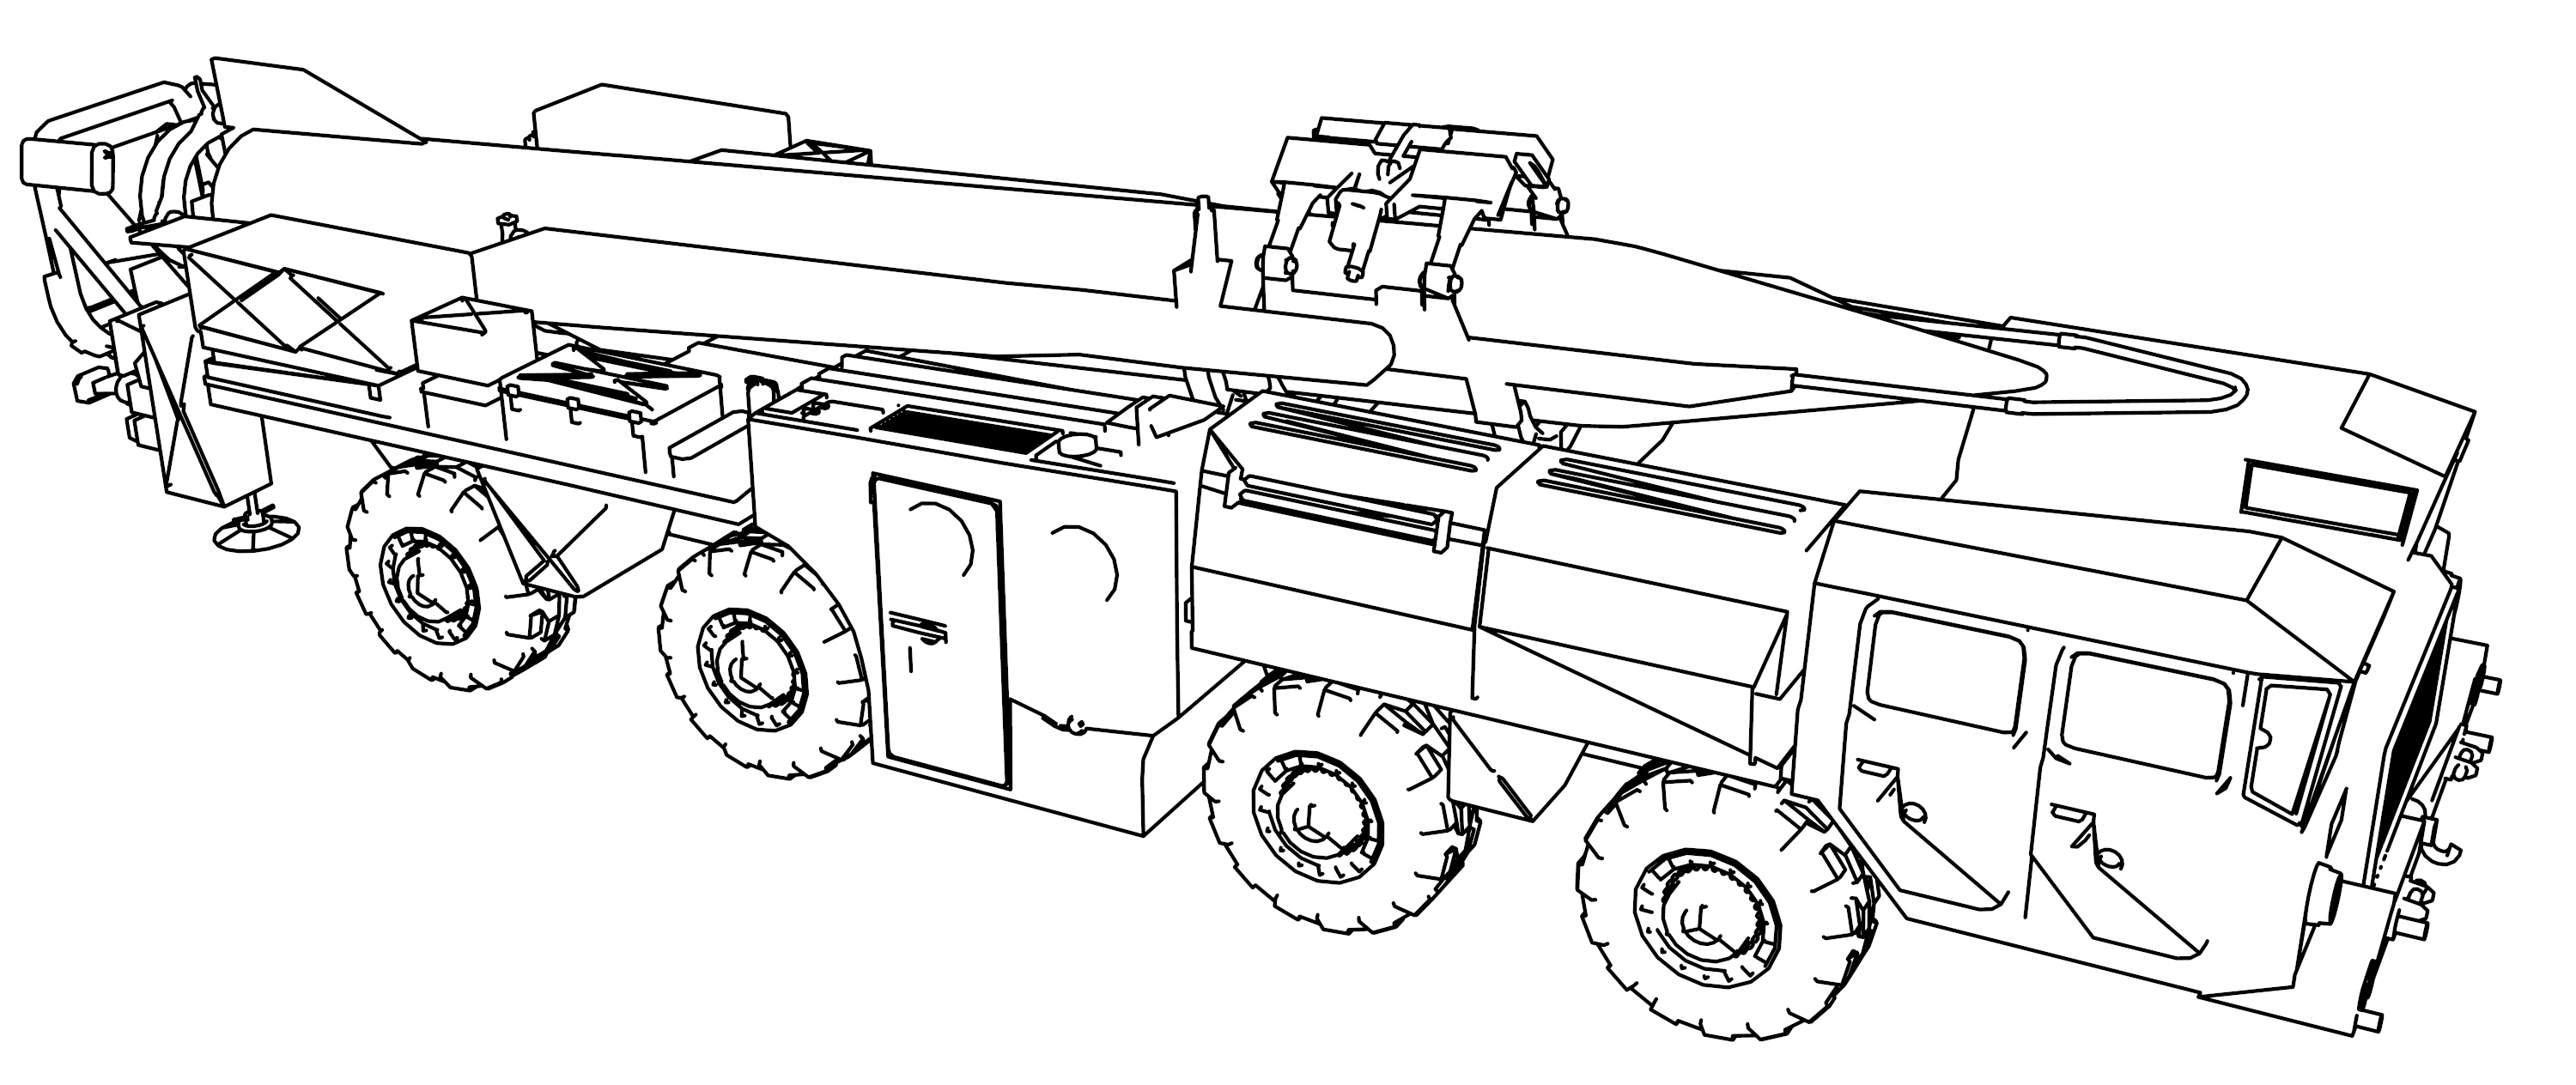 Scud Launcher V3 Rocket Launcher Military Tank Coloring Page